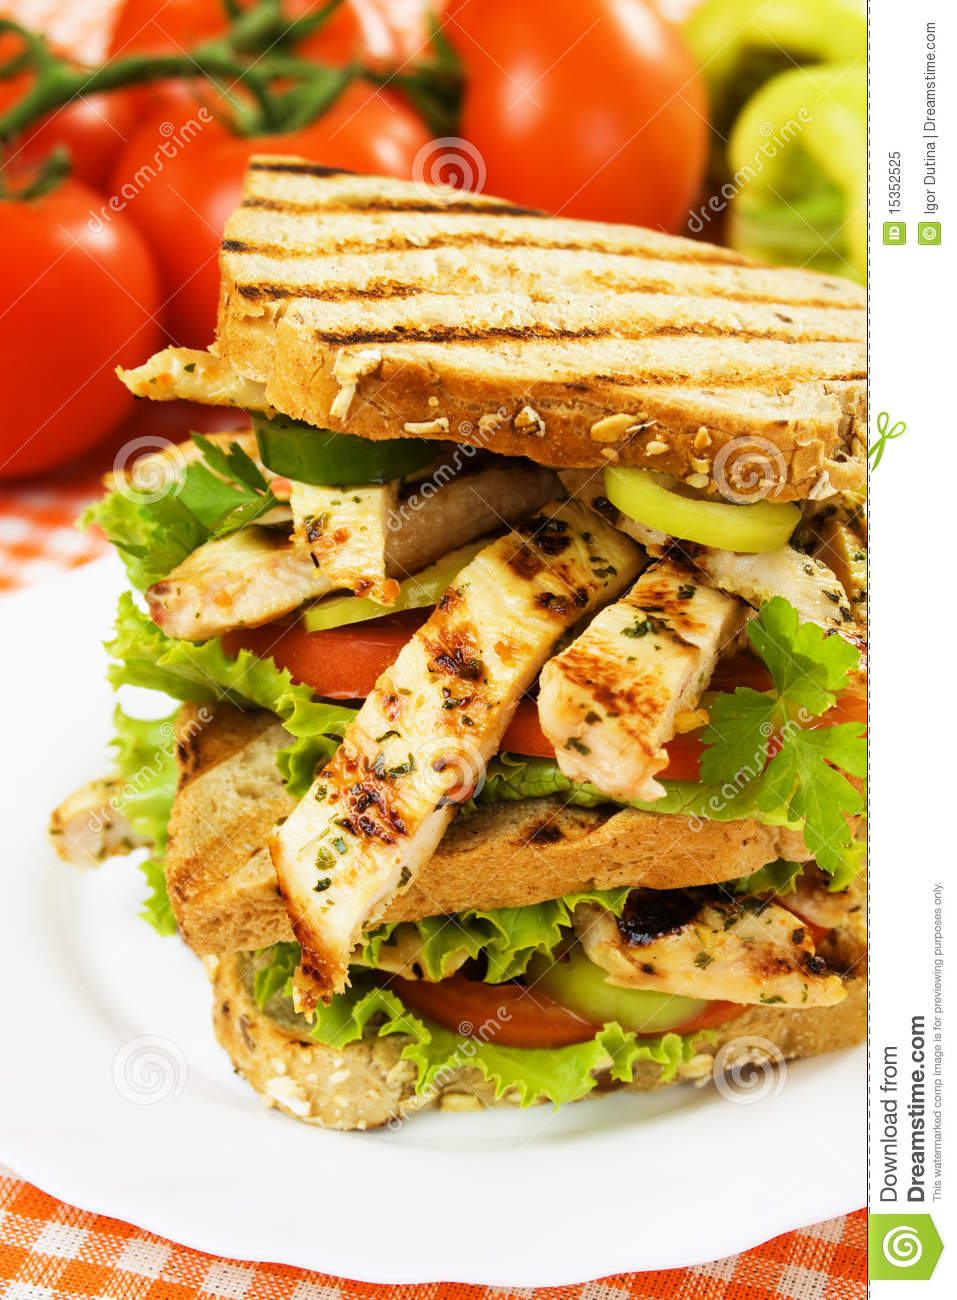 grilled chicken sandwich royalty free stock photo image